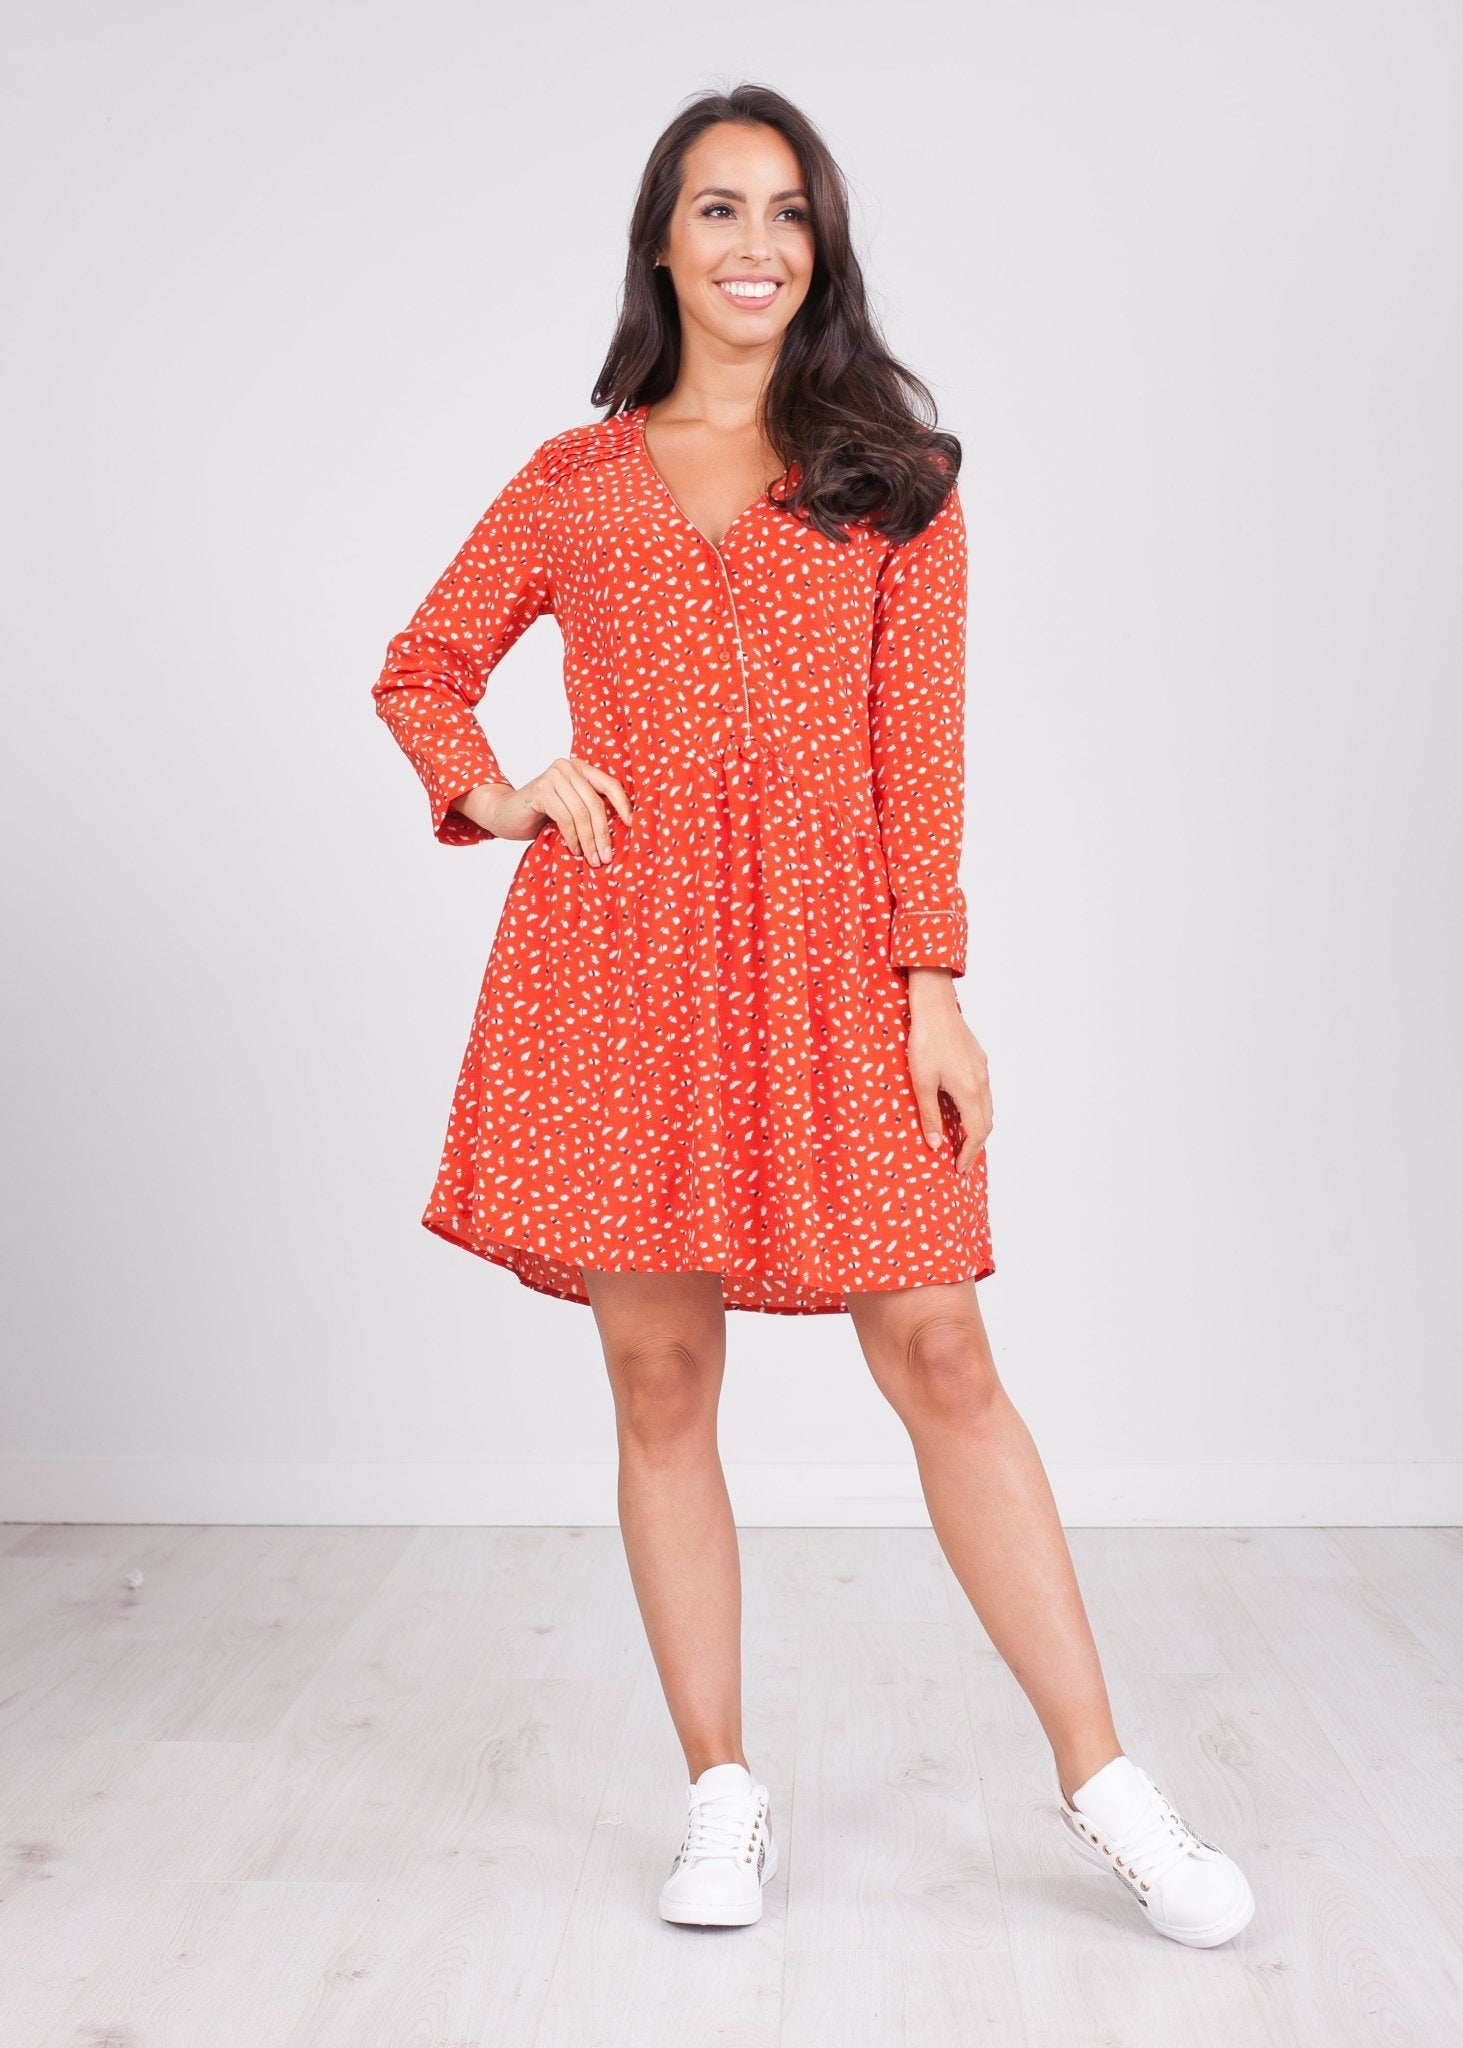 Cherie Red & White Printed Dress - The Walk in Wardrobe